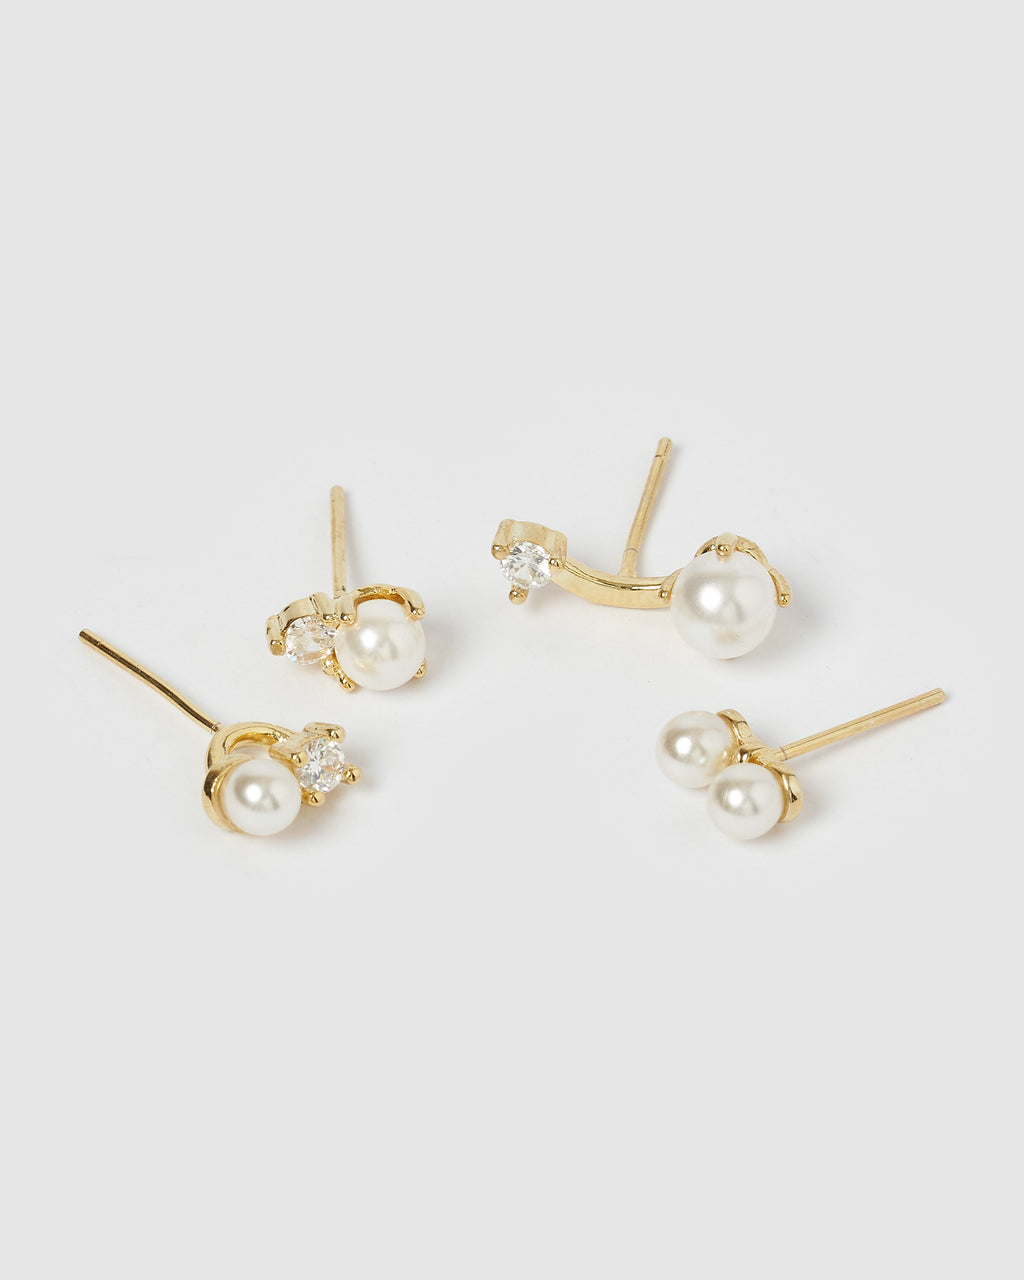 Izoa Nikki 4 Piece Stud Earring Set Gold Pearl